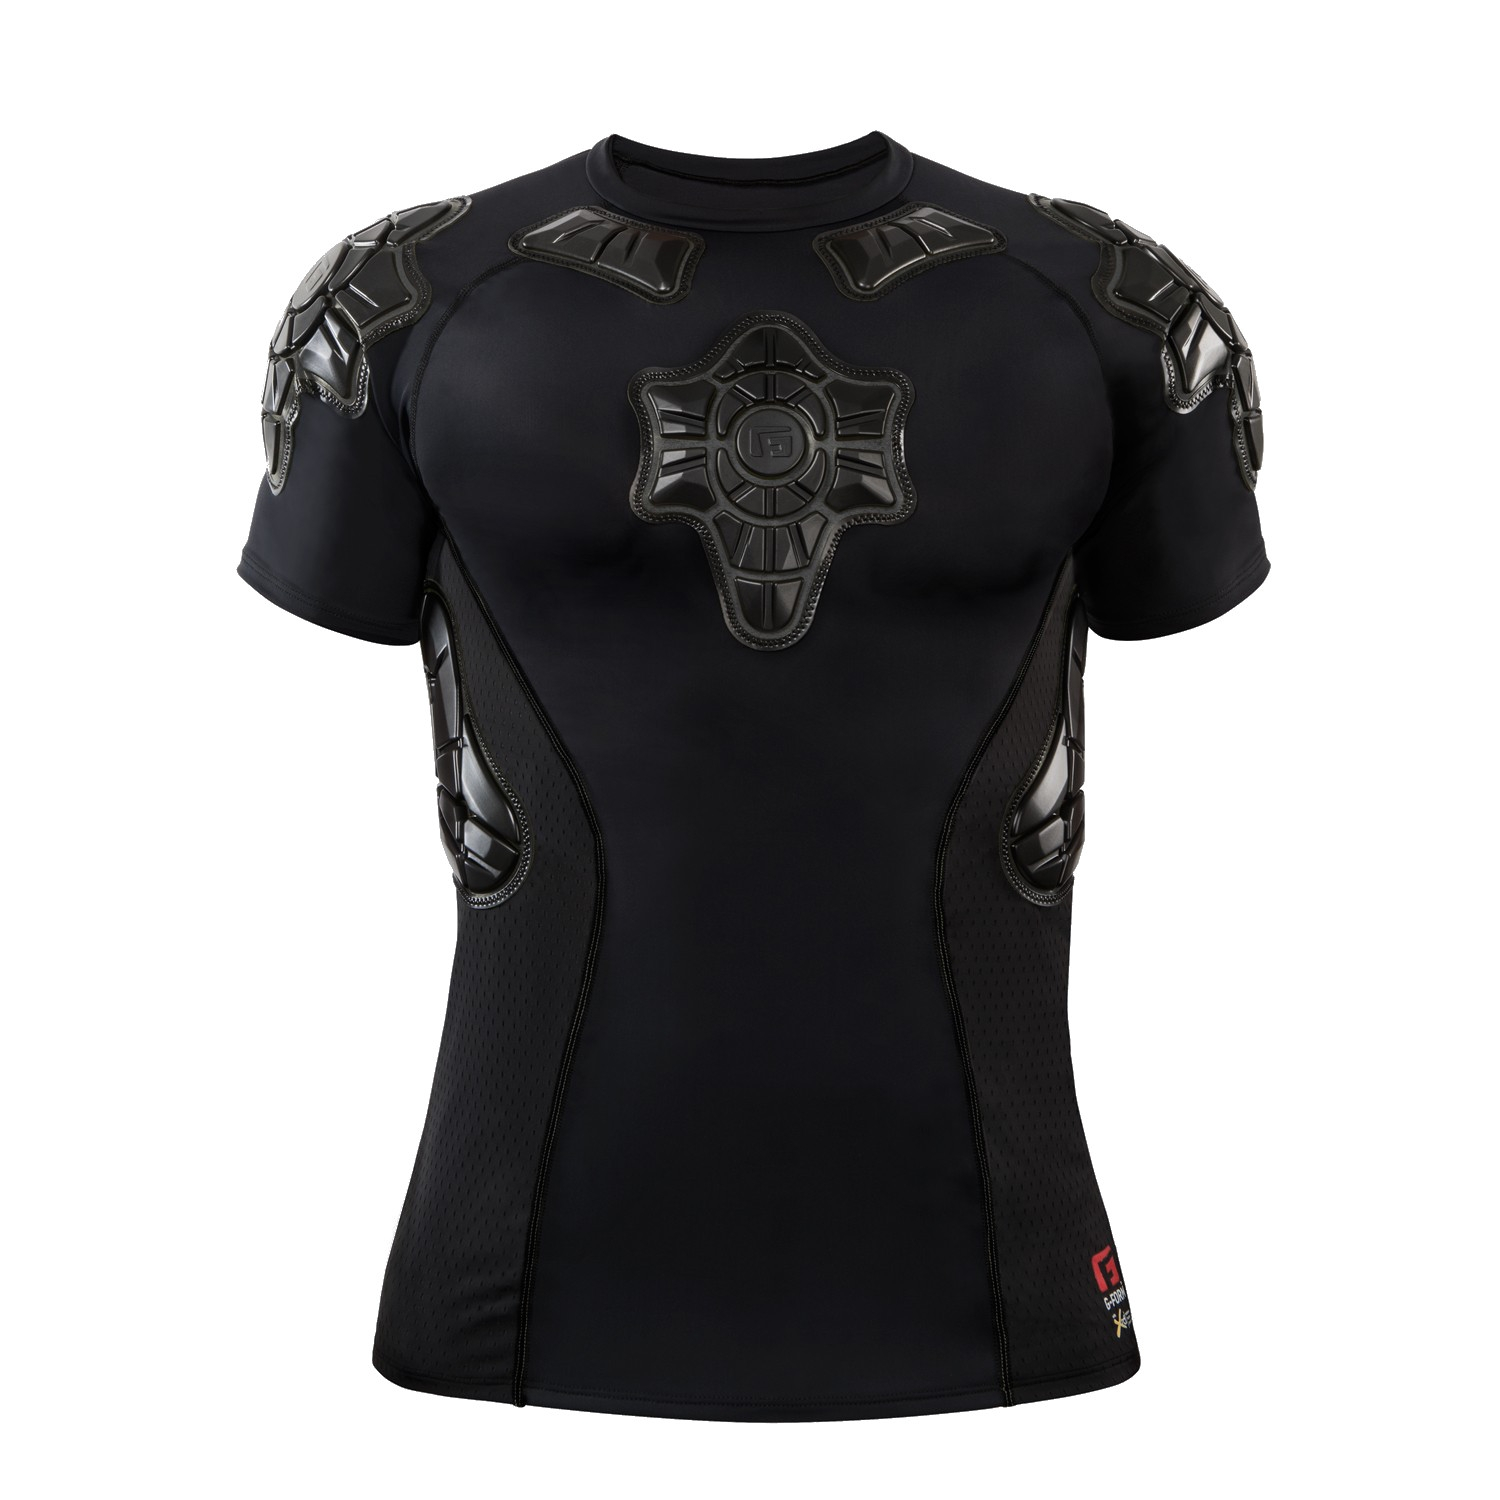 Tee-shirt de protection G-Form Pro-X Noir/Gris - XL